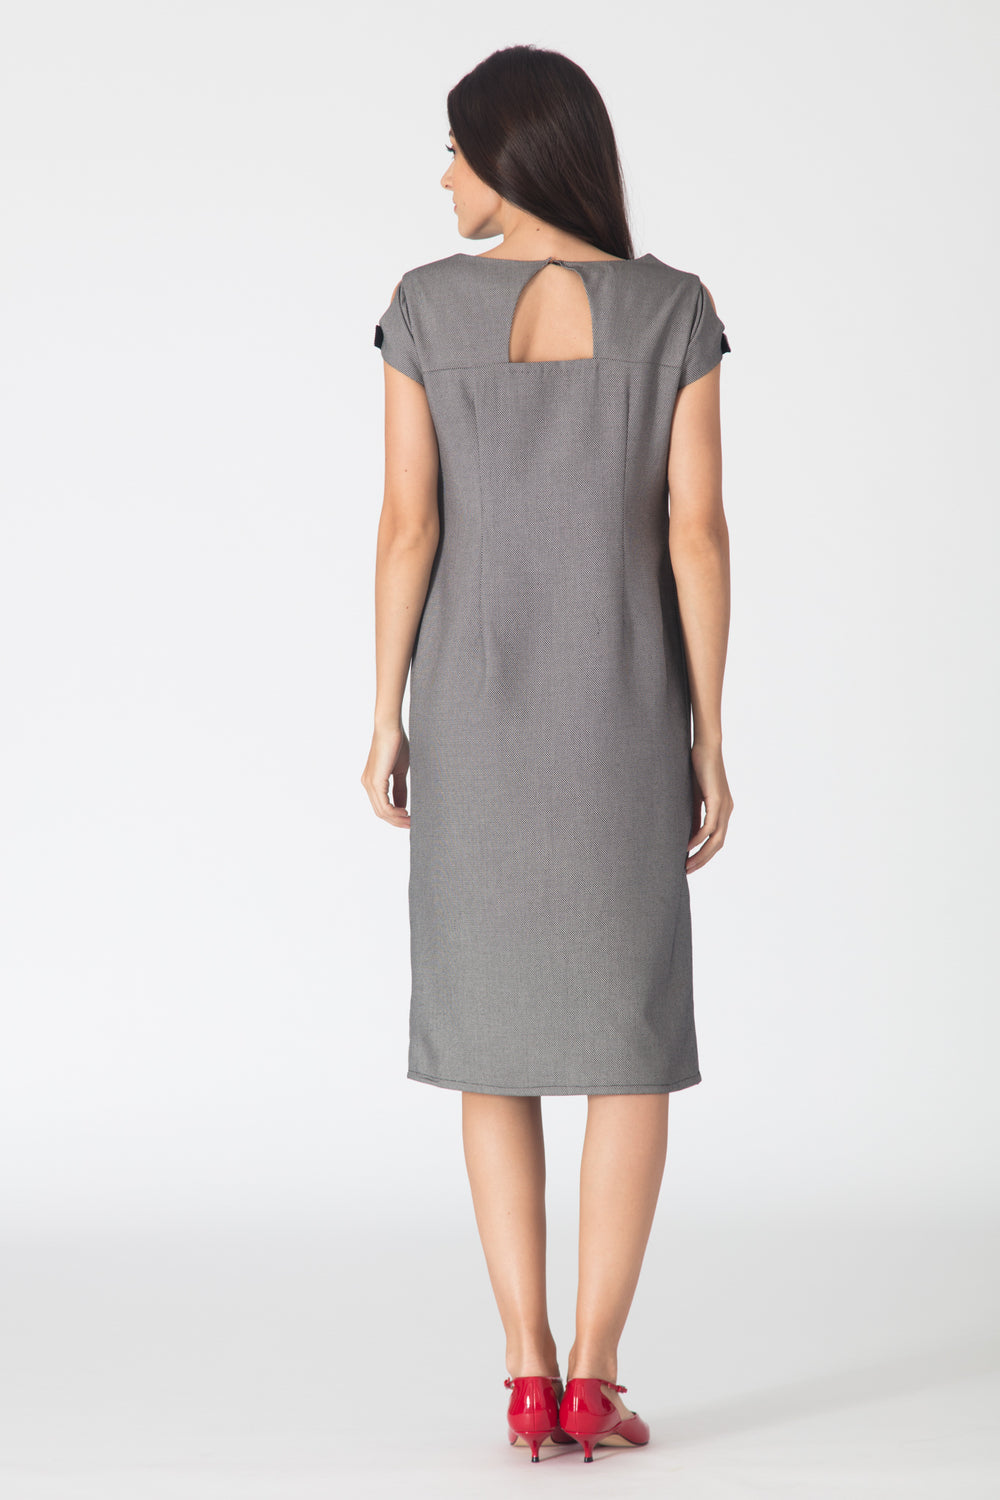 Pipa Shift Dress - Grey